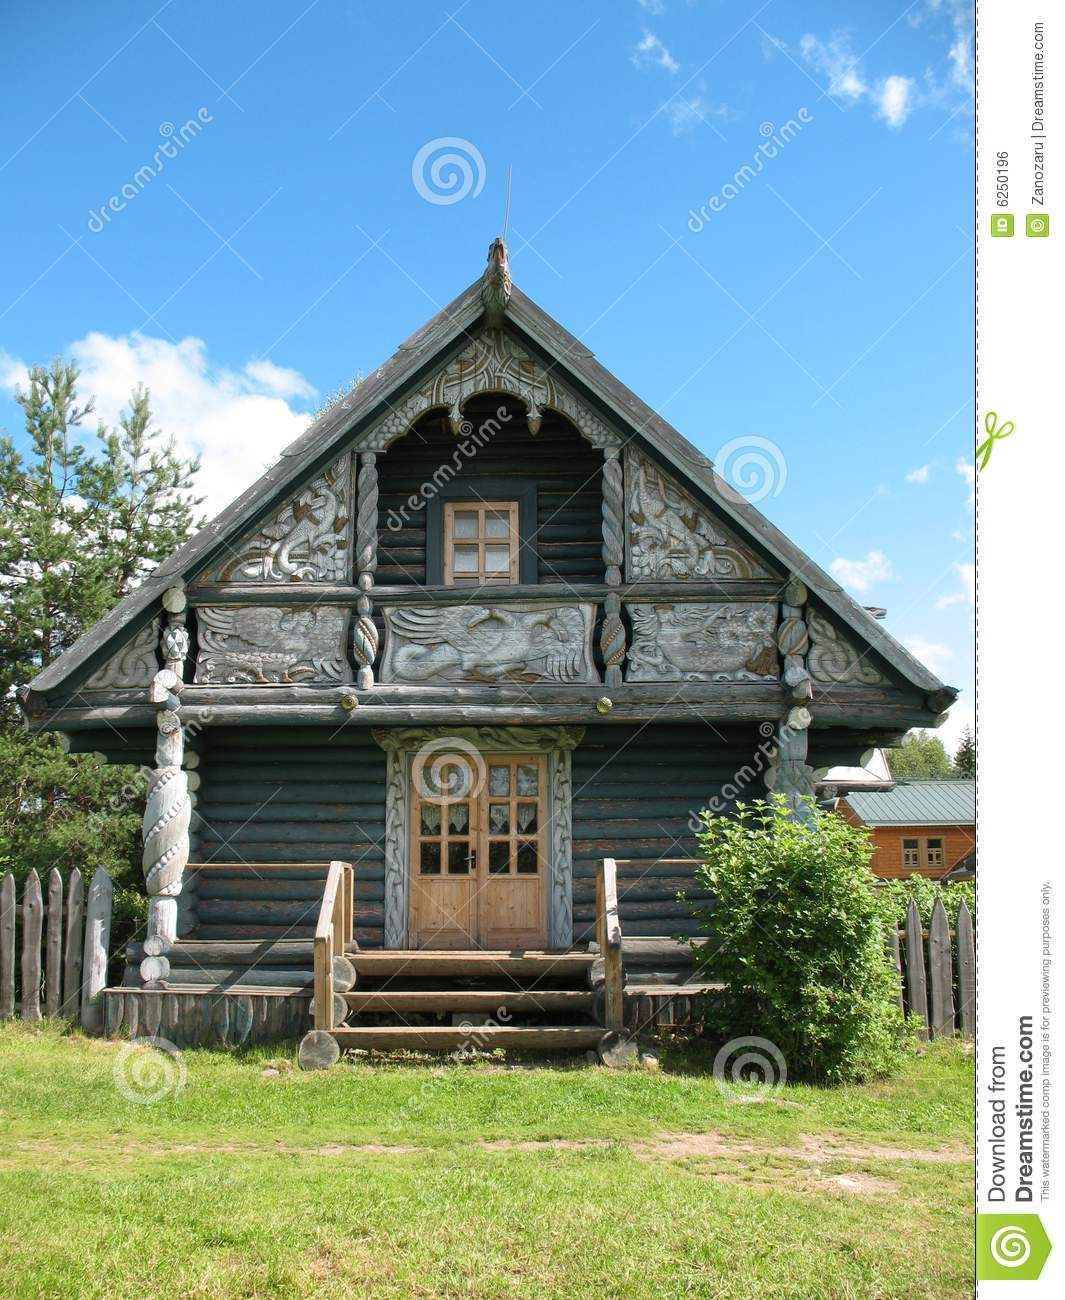 LocationPhotoDirectLink G1826002 I42561837 Llandysul Ceredigion Wales as well Watch moreover Royalty Free Stock Images Traditional Austrian House Image25978769 also Keralaislandresort also Kitchens Interiors. on old farmhouse style house plans